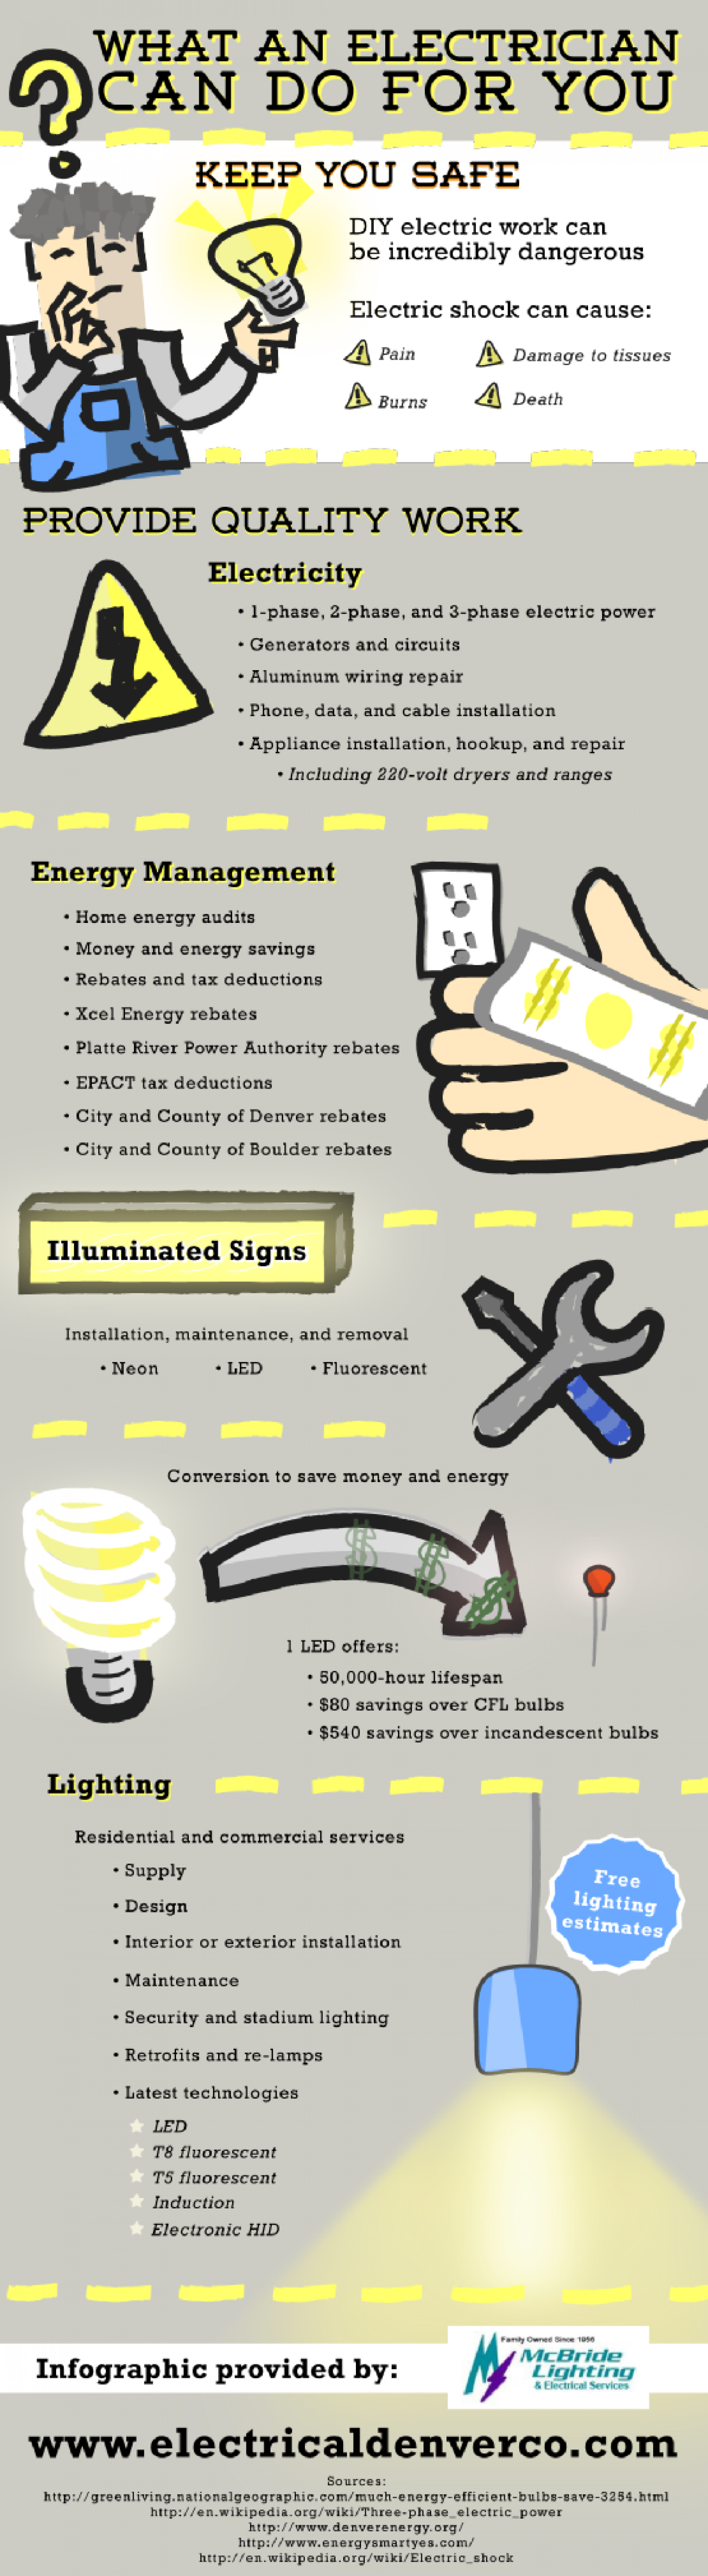 What an Electrician Can Do For You Infographic